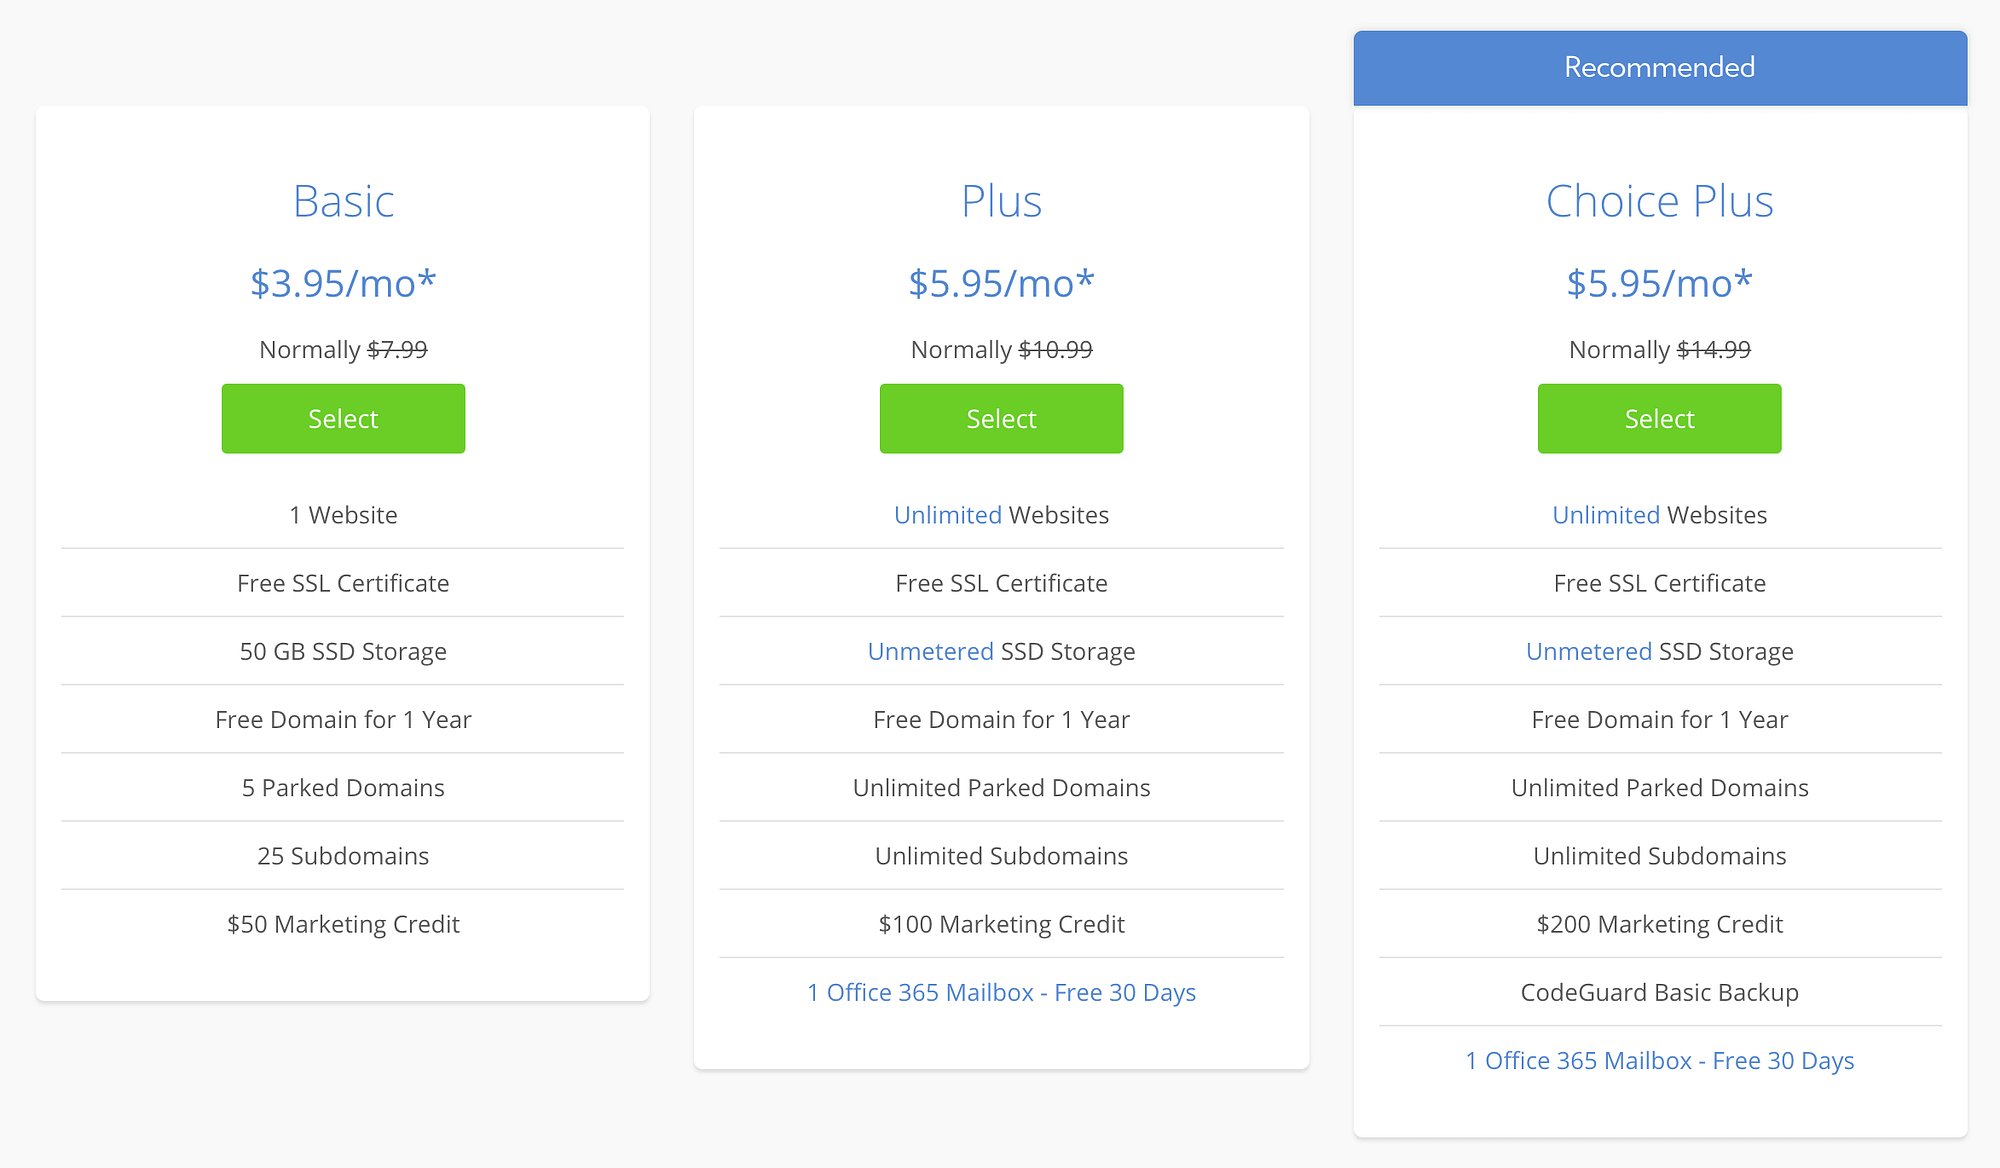 Bluehost vs HostGator pricing for shared plans